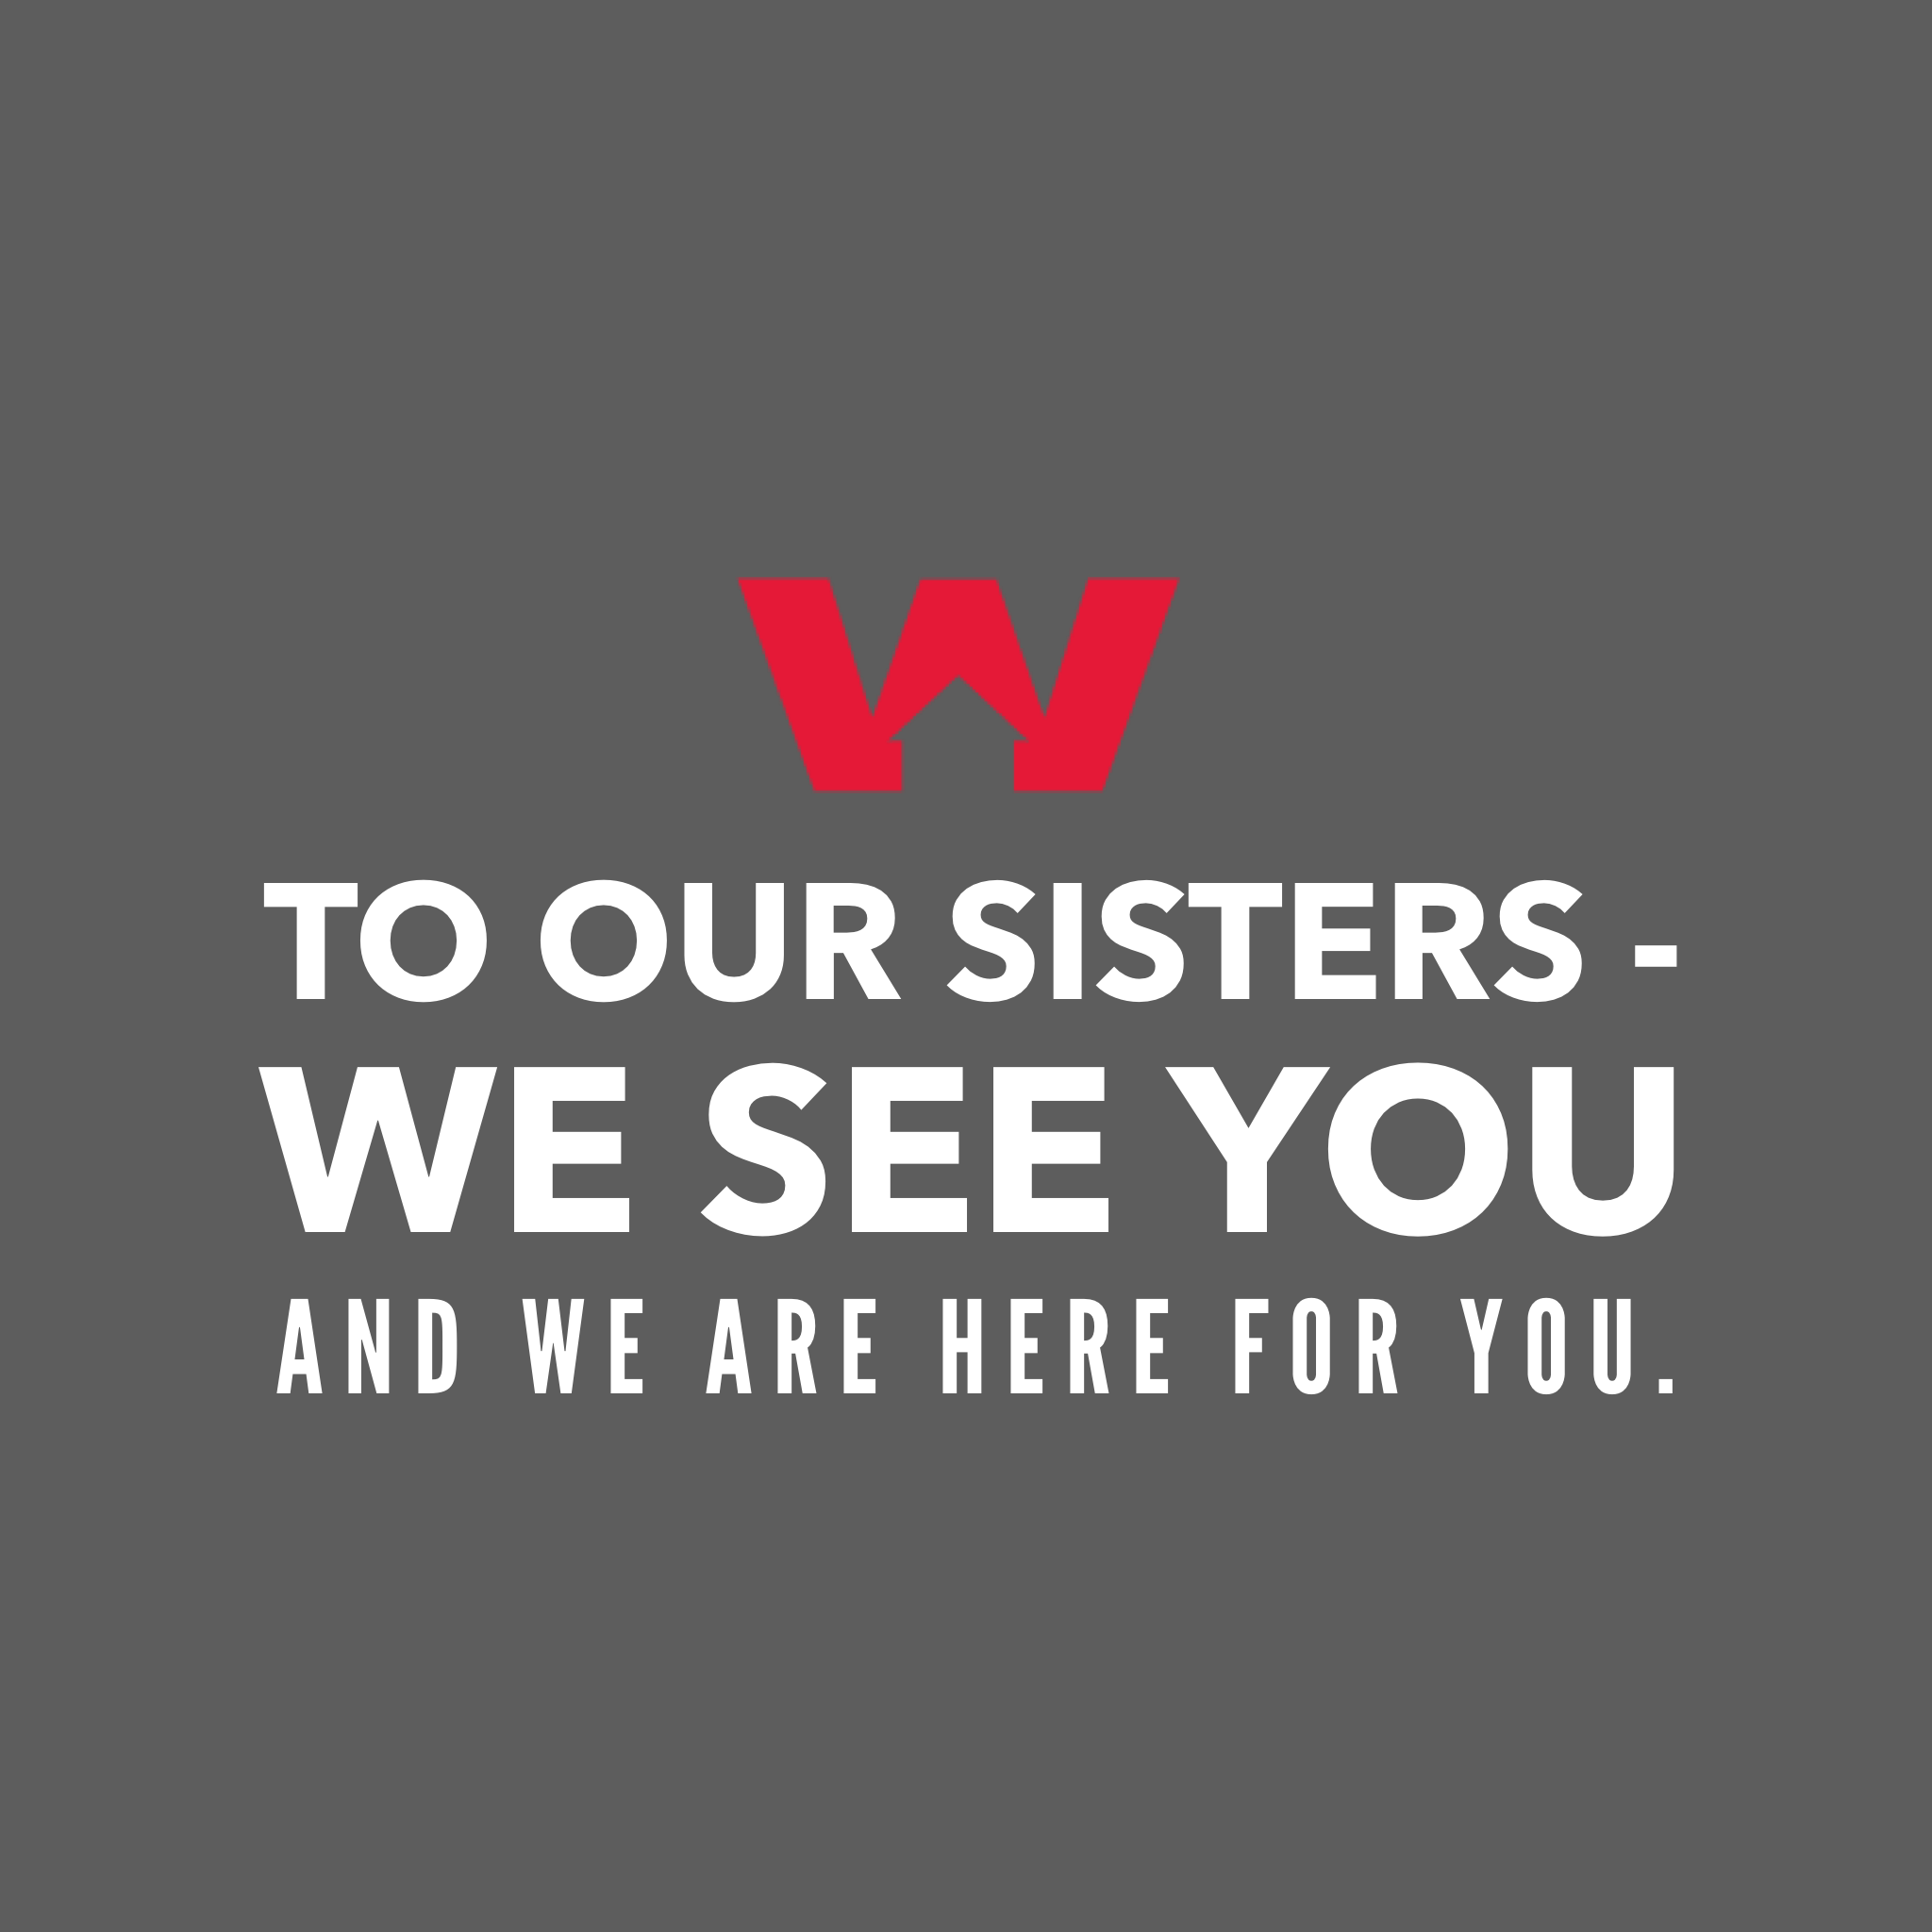 To our sisters - we see you and we are here for you.